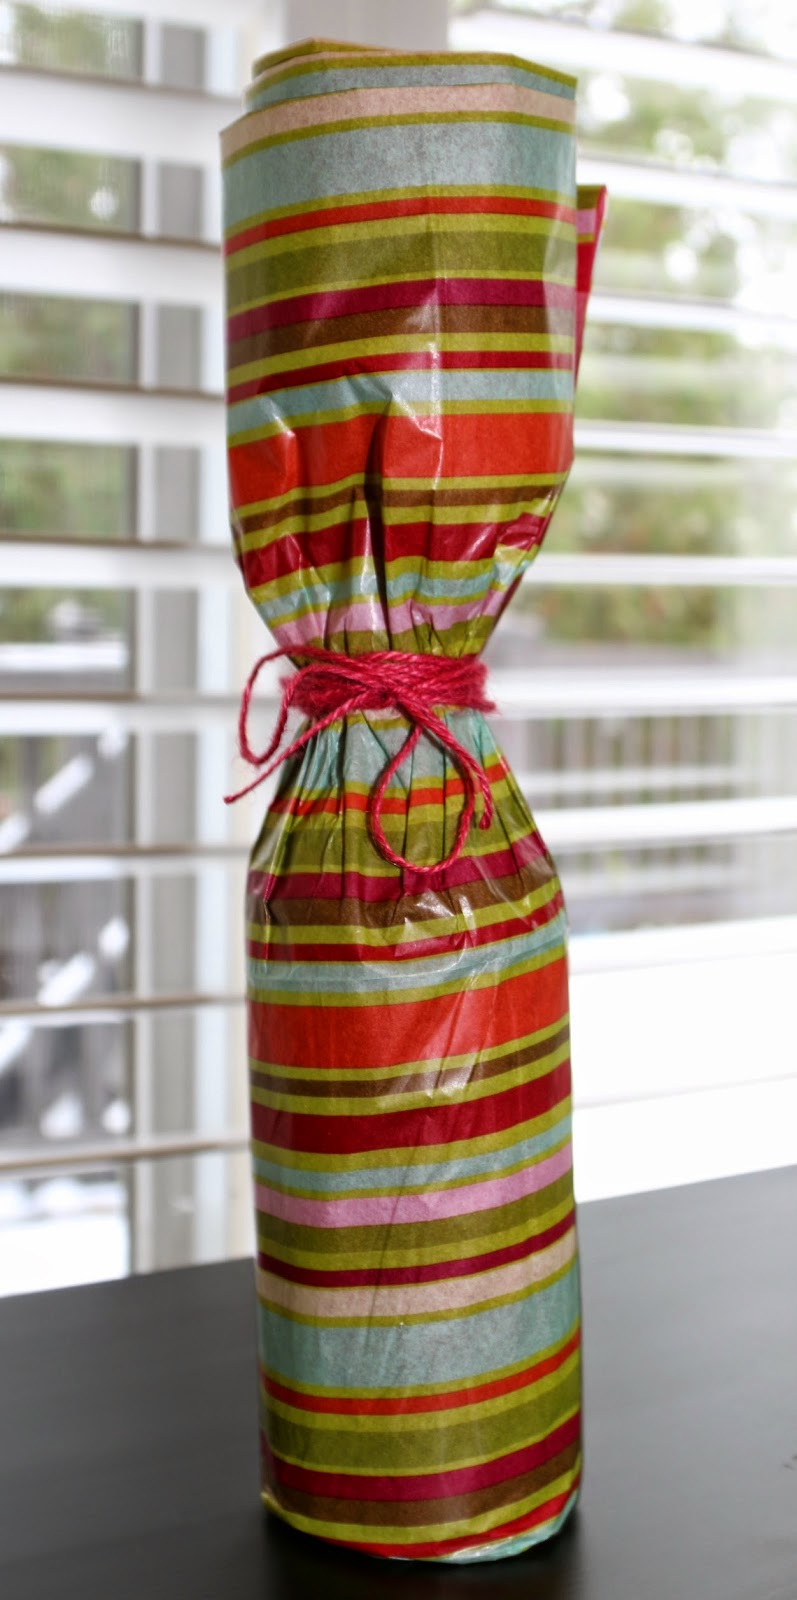 Tissue Paper Wine Bottle Wrapping Image